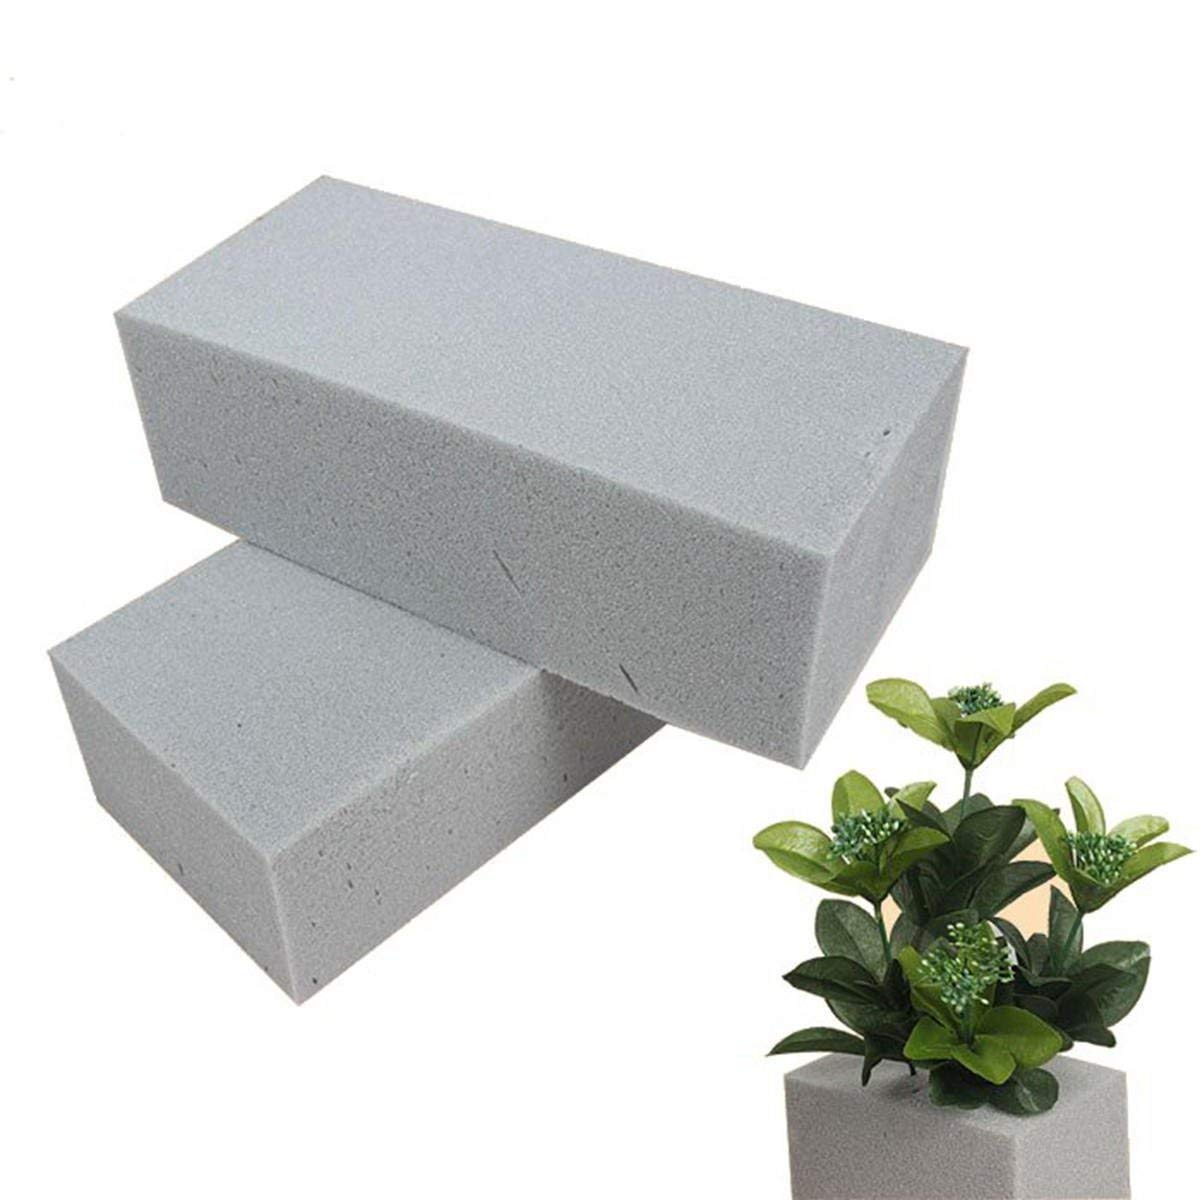 Fresh Dry Craft Wedding Flower Bouquet Holder Floral Foam Bricks Block - Tools, Industrial & Scientific Raw Materials - 1 Pcs Floral Foam